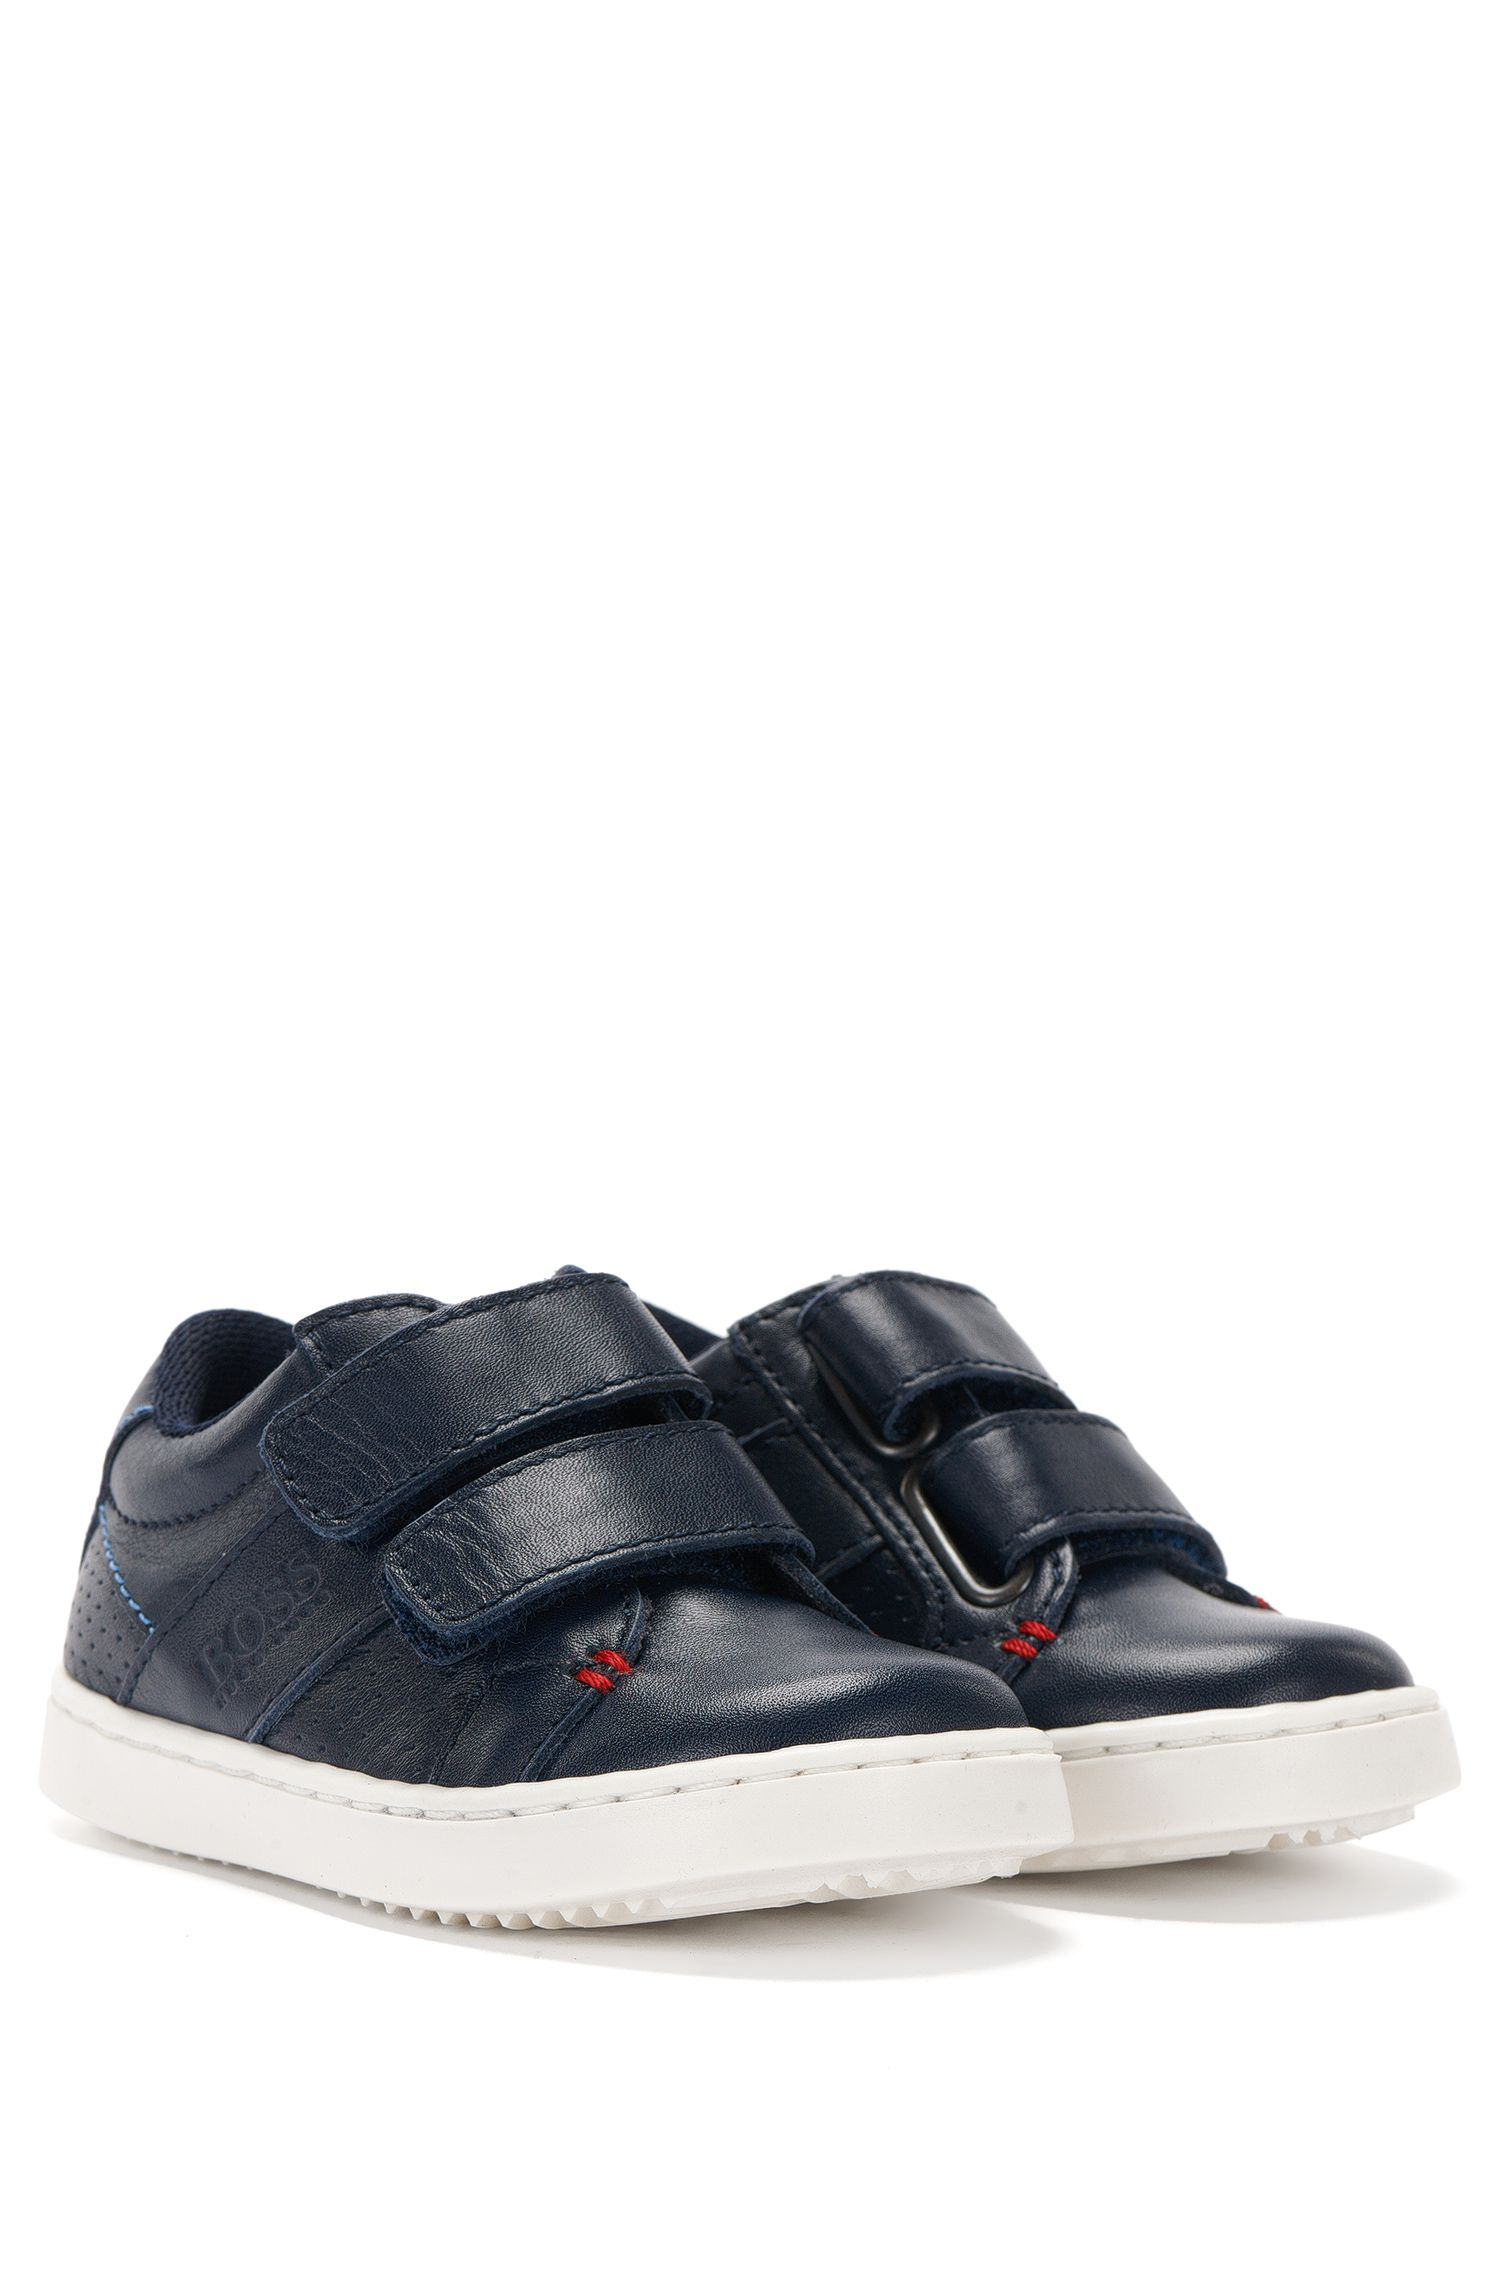 'J09081' | Toddler Leather Sneakers